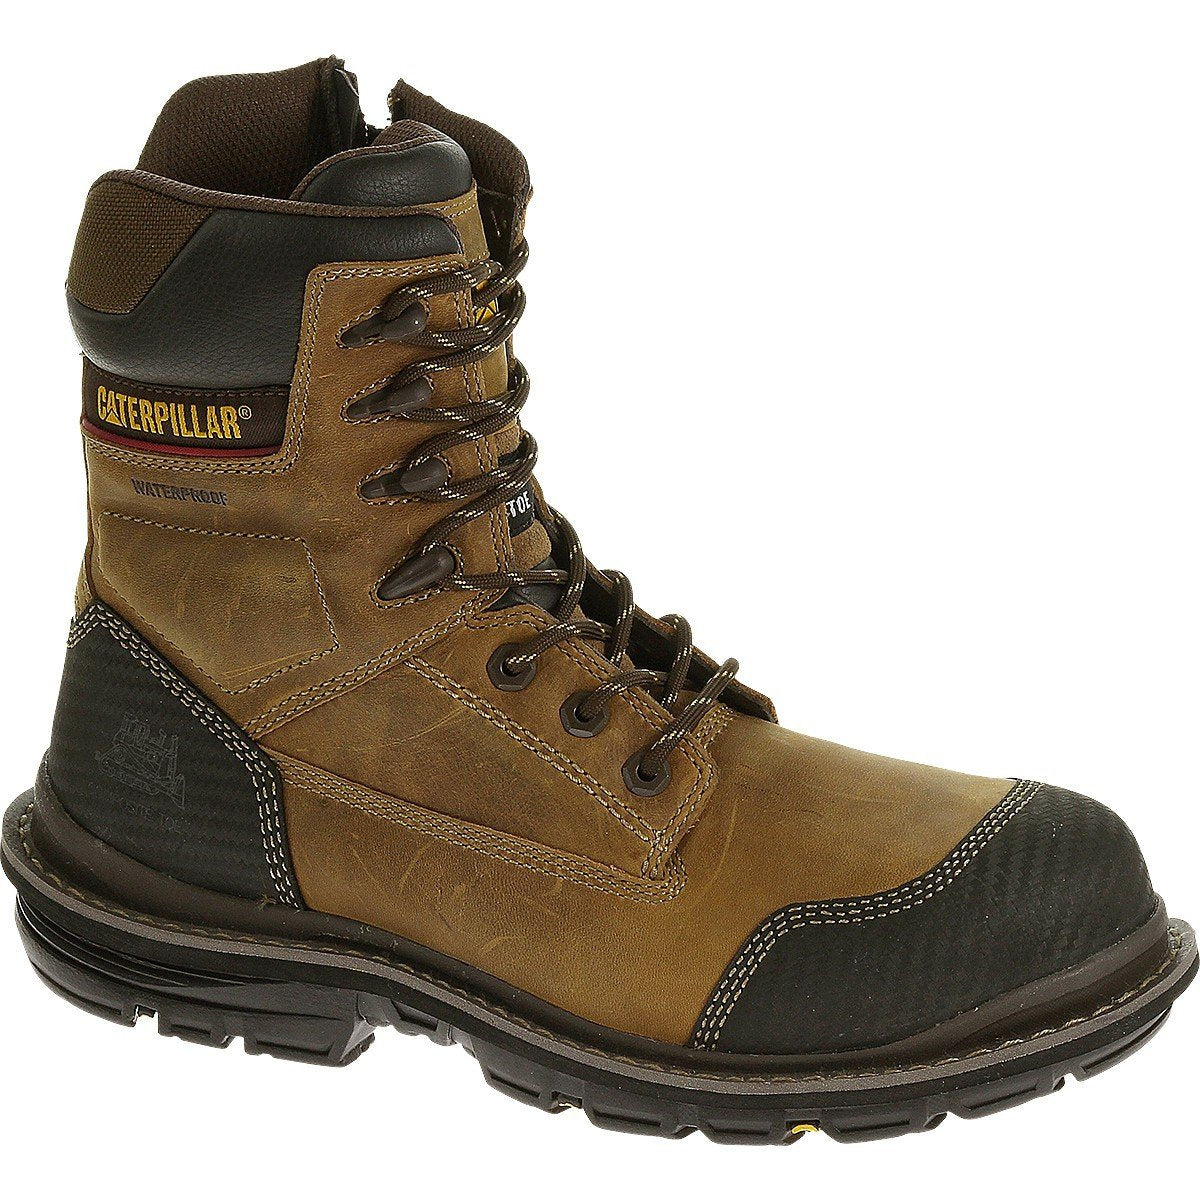 "Fabricate 8"" Tough Waterproof Work Boot"